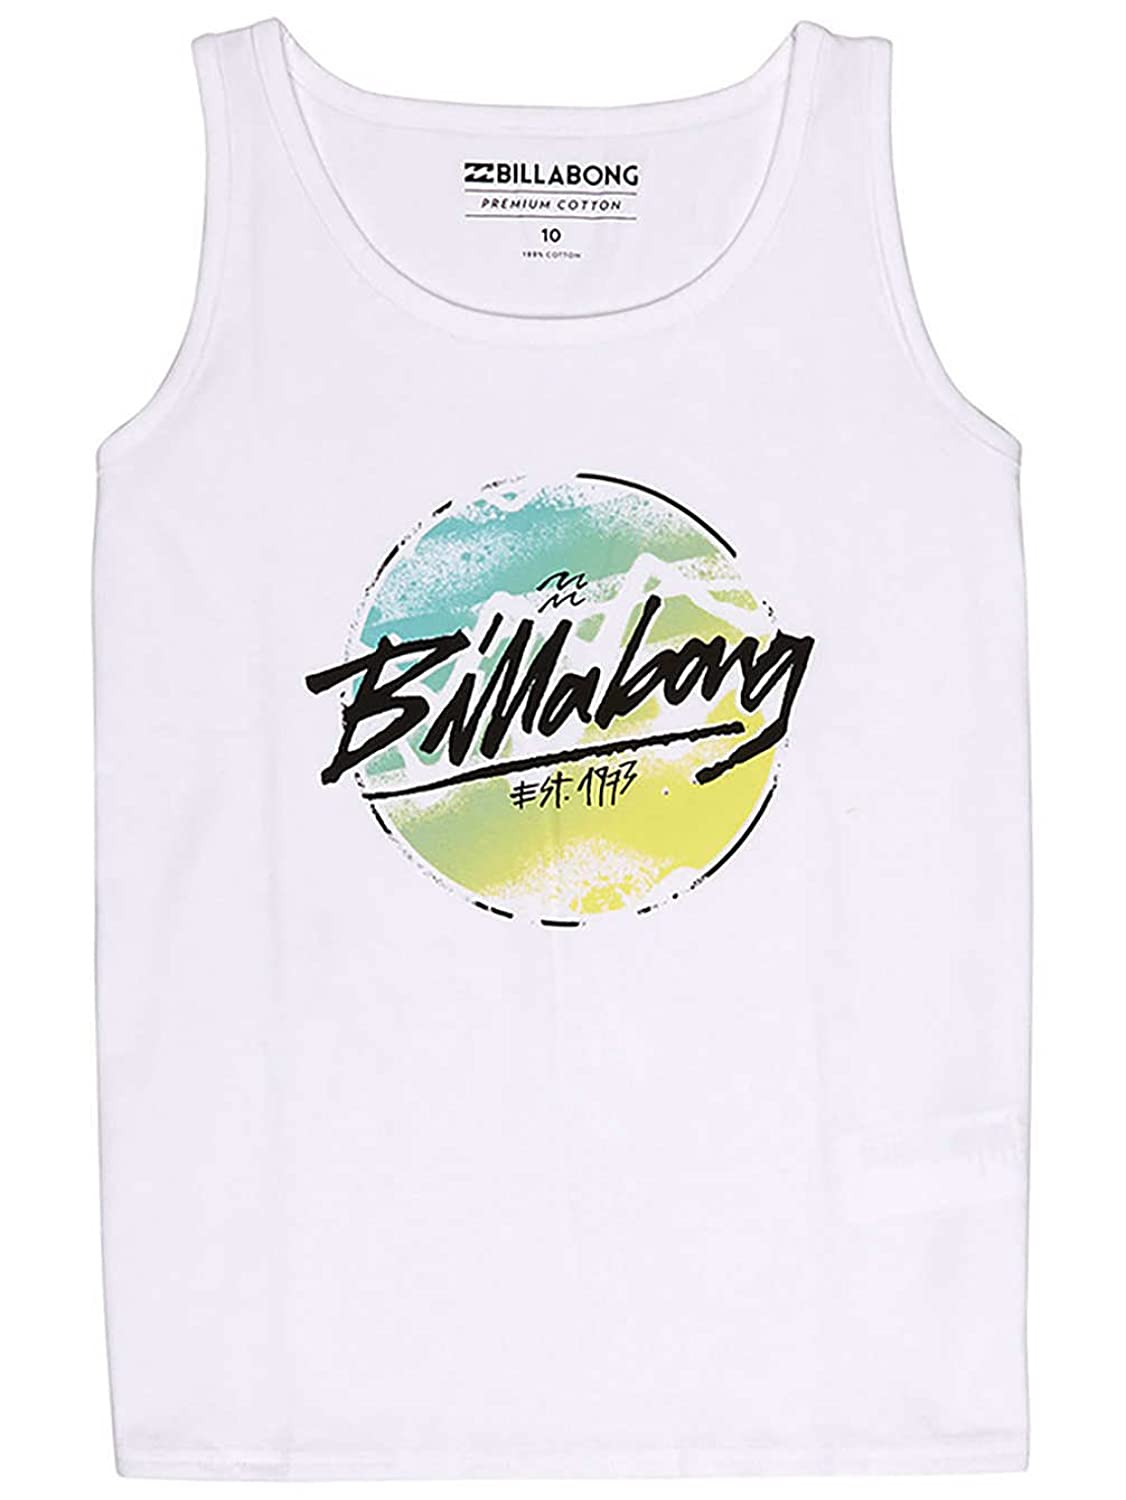 Top Billabong Spray Quest Short Sleeve T-Shirt free shipping